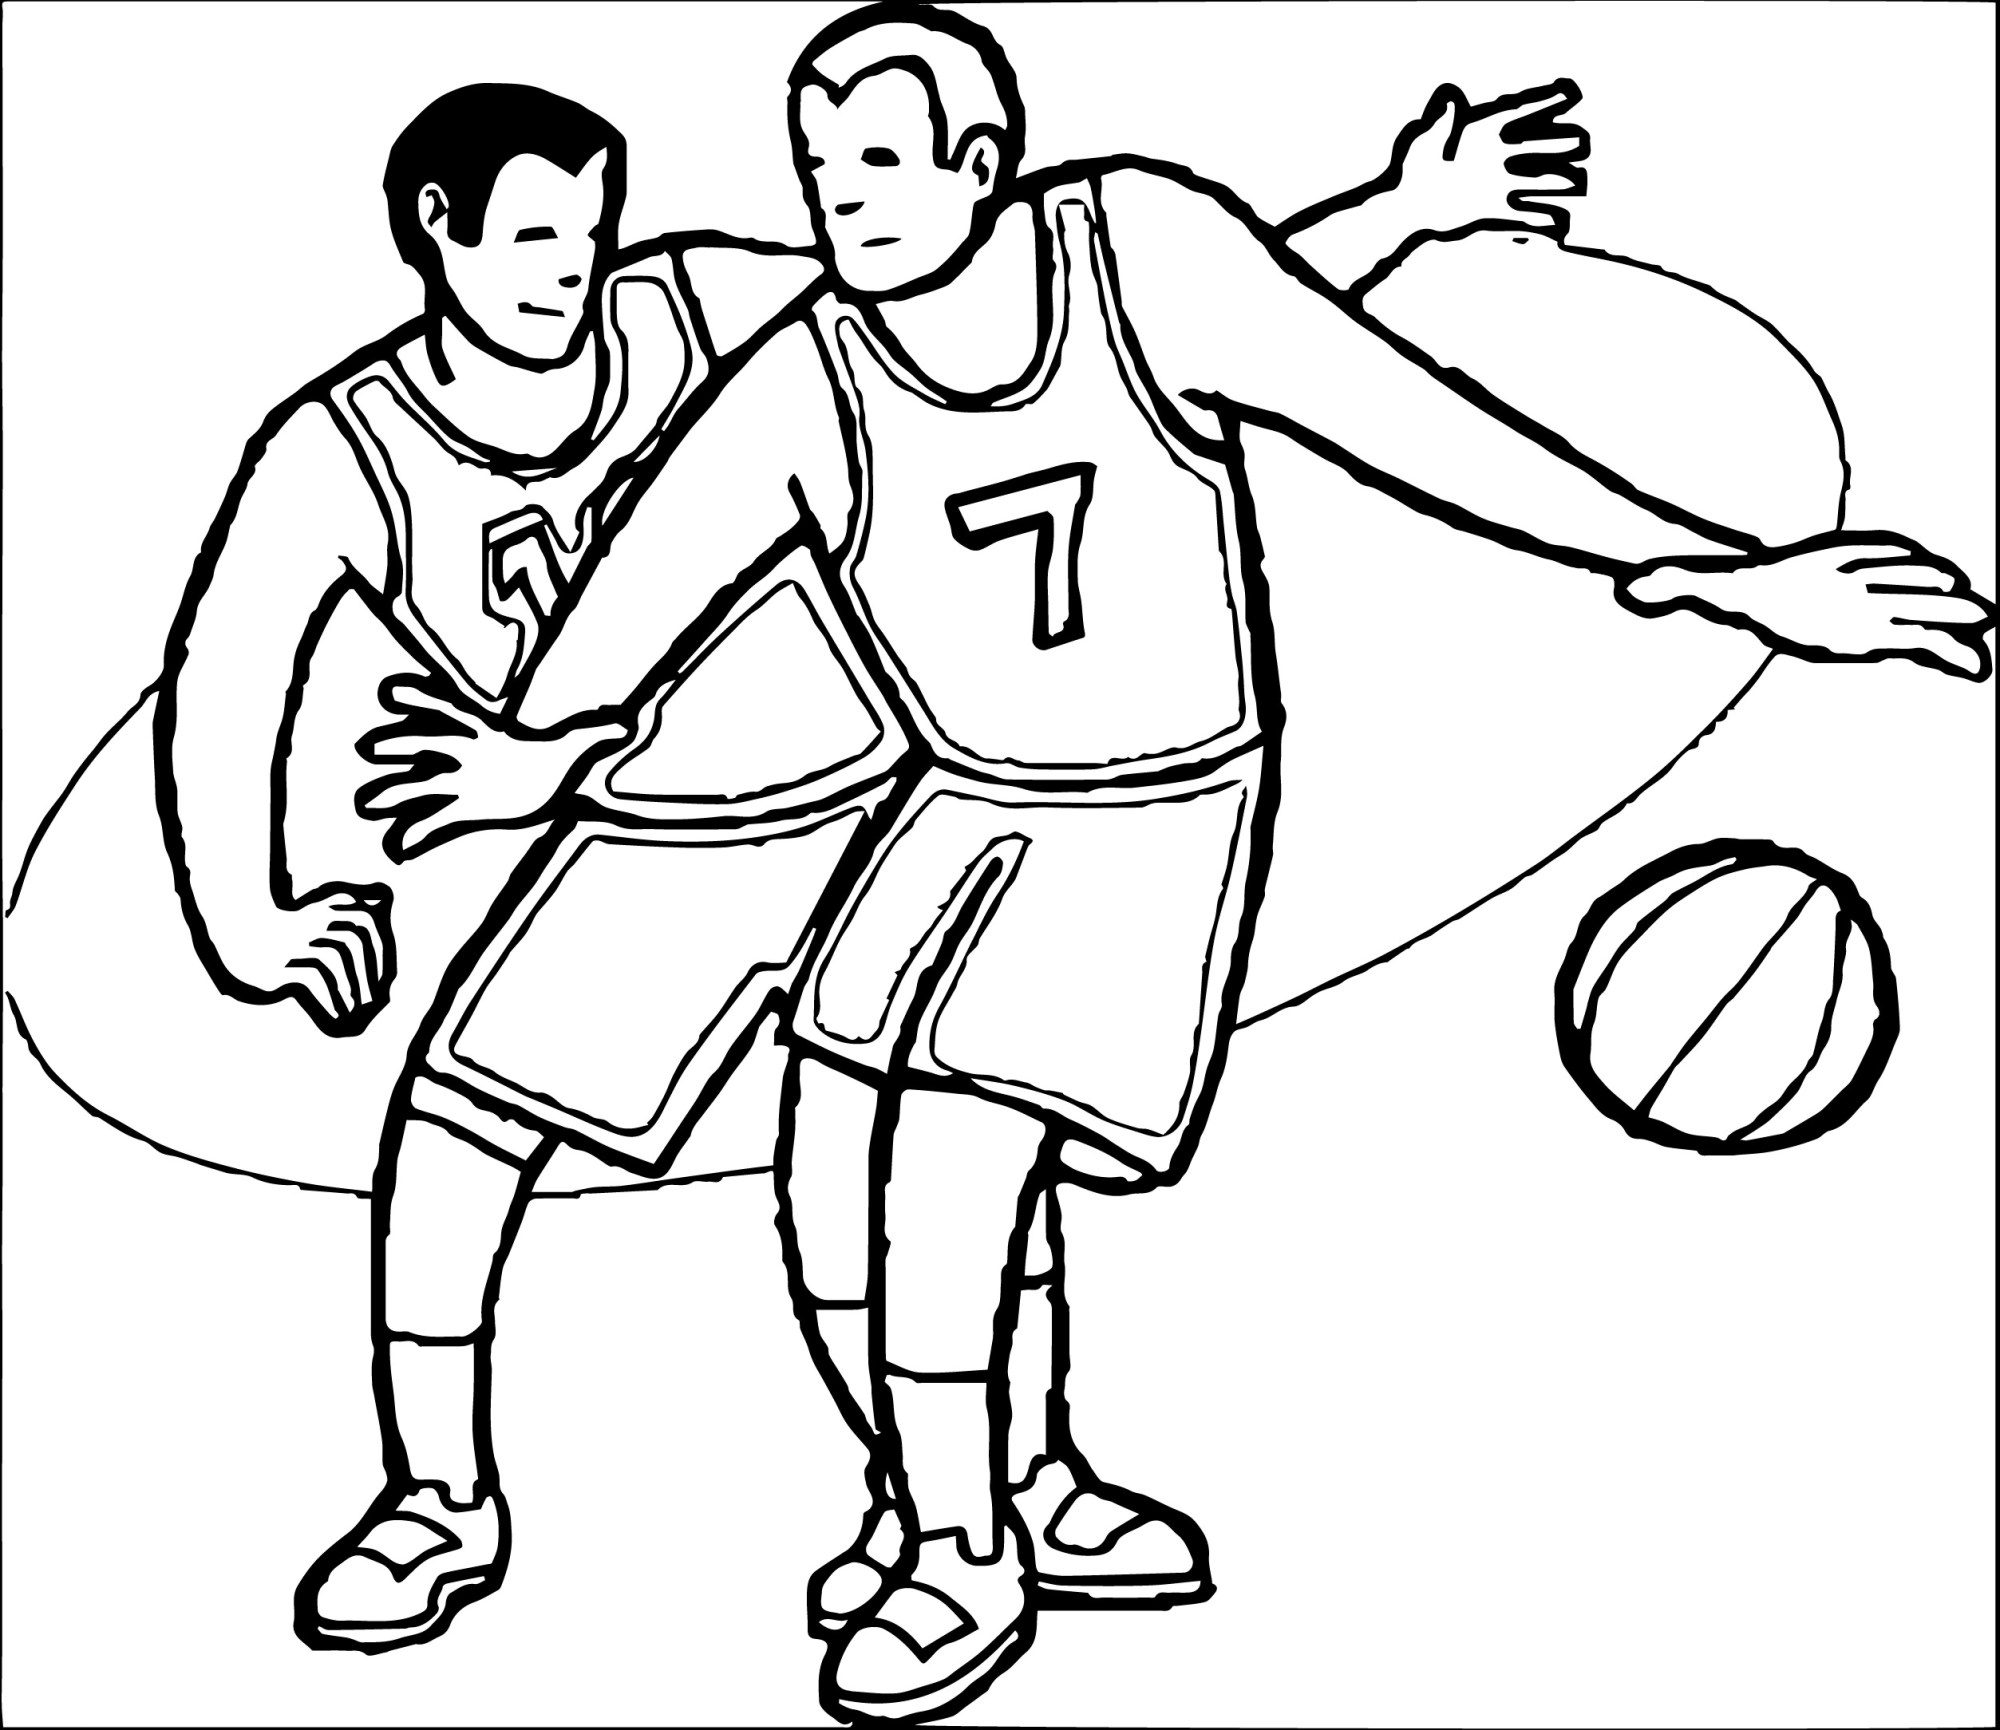 hight resolution of basketball hoop clipart free images 2 clipartix clipartix